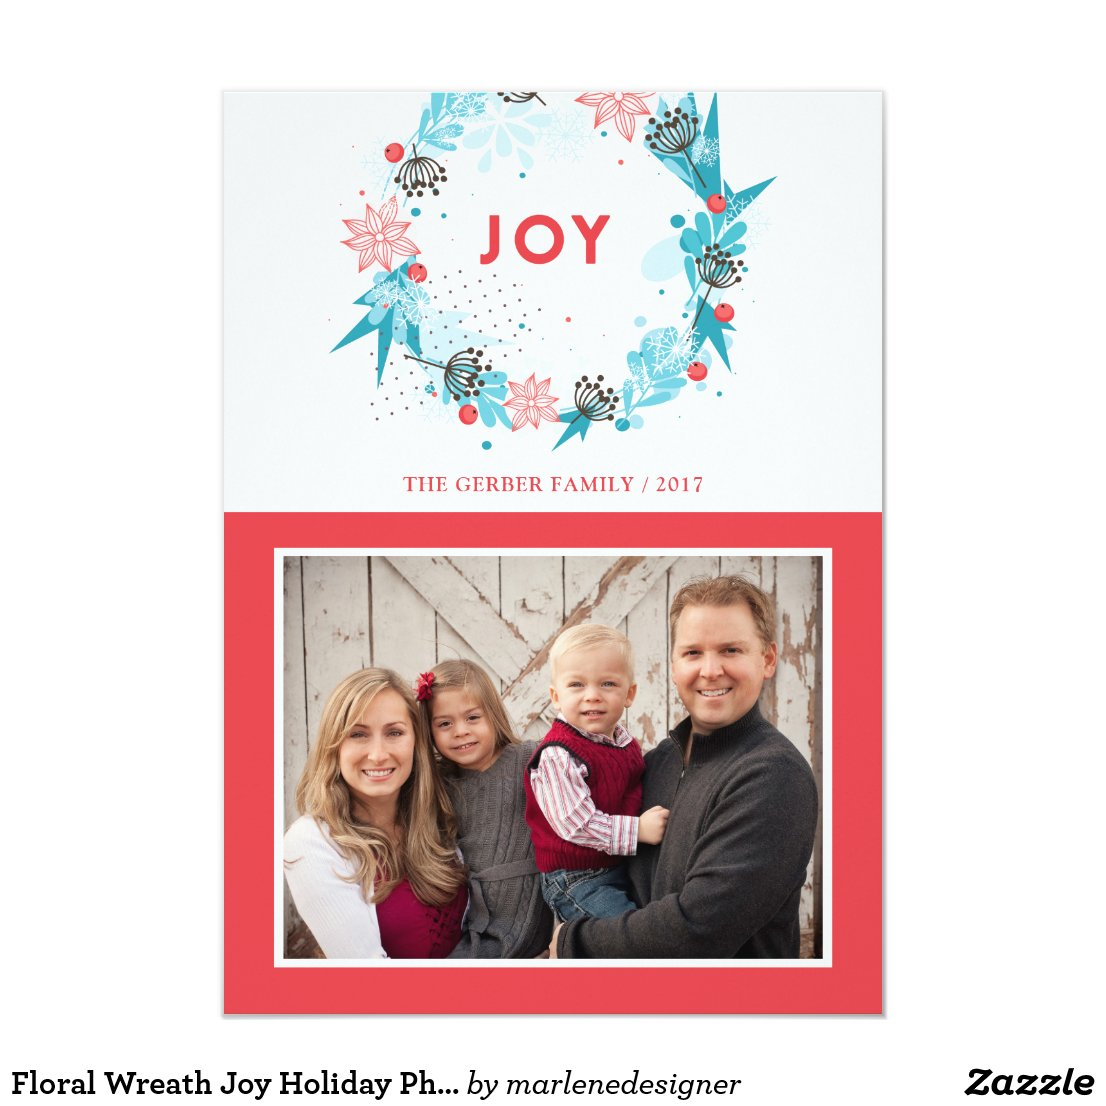 Floral Wreath Joy Holiday Photo Card